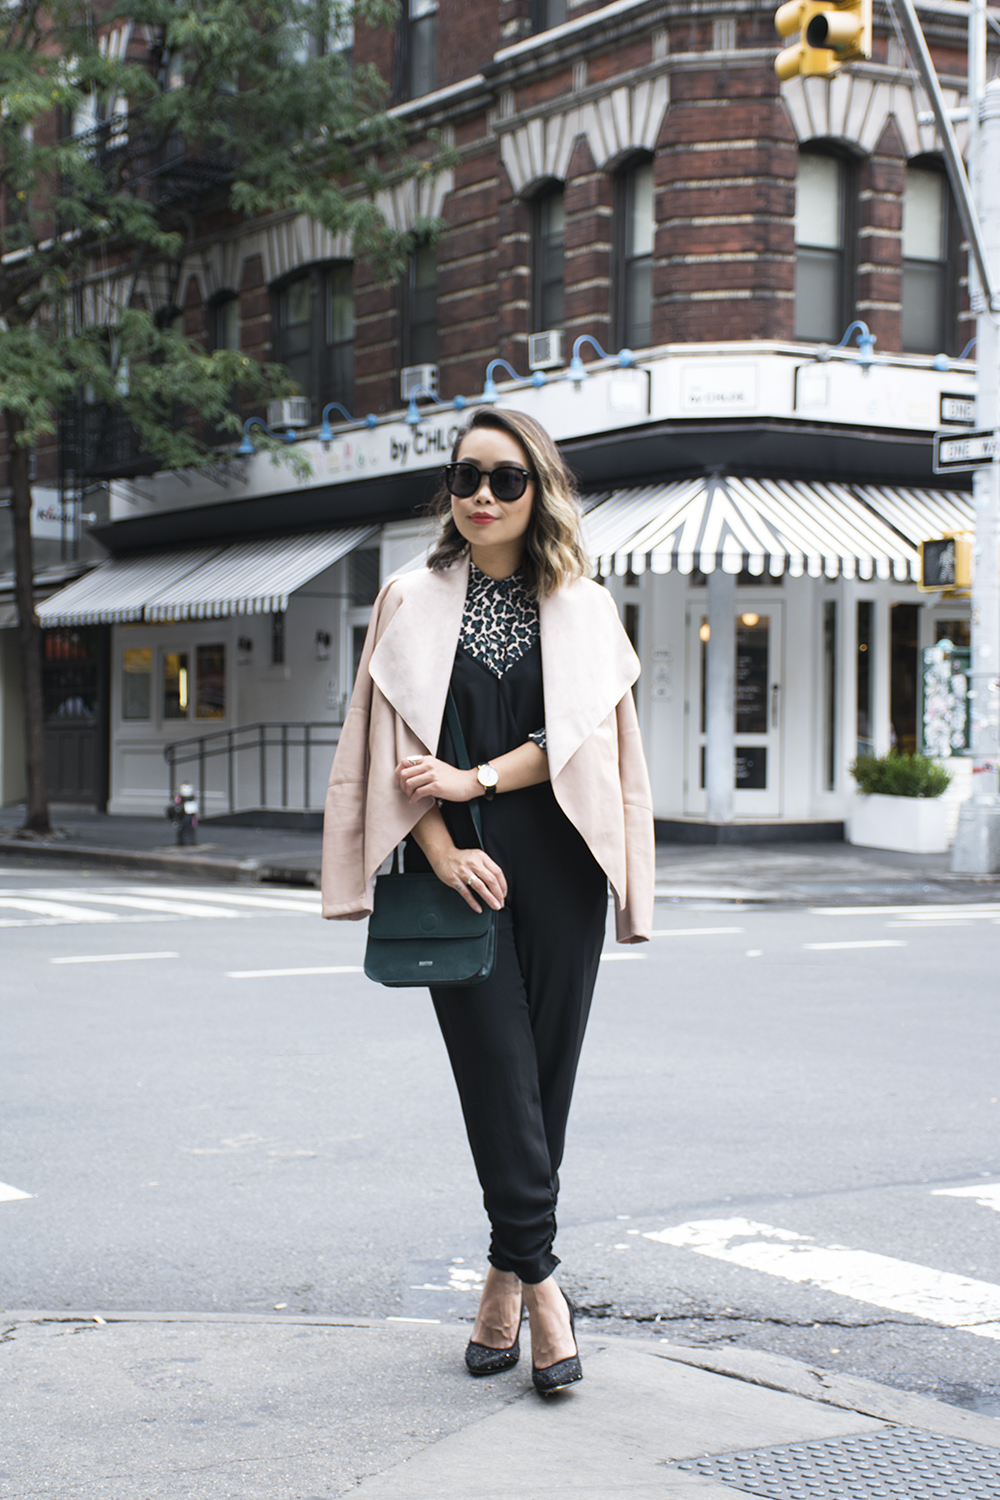 05nyc-westvillage-green-pink-leopard-jumpsuit-travel-style-fashion